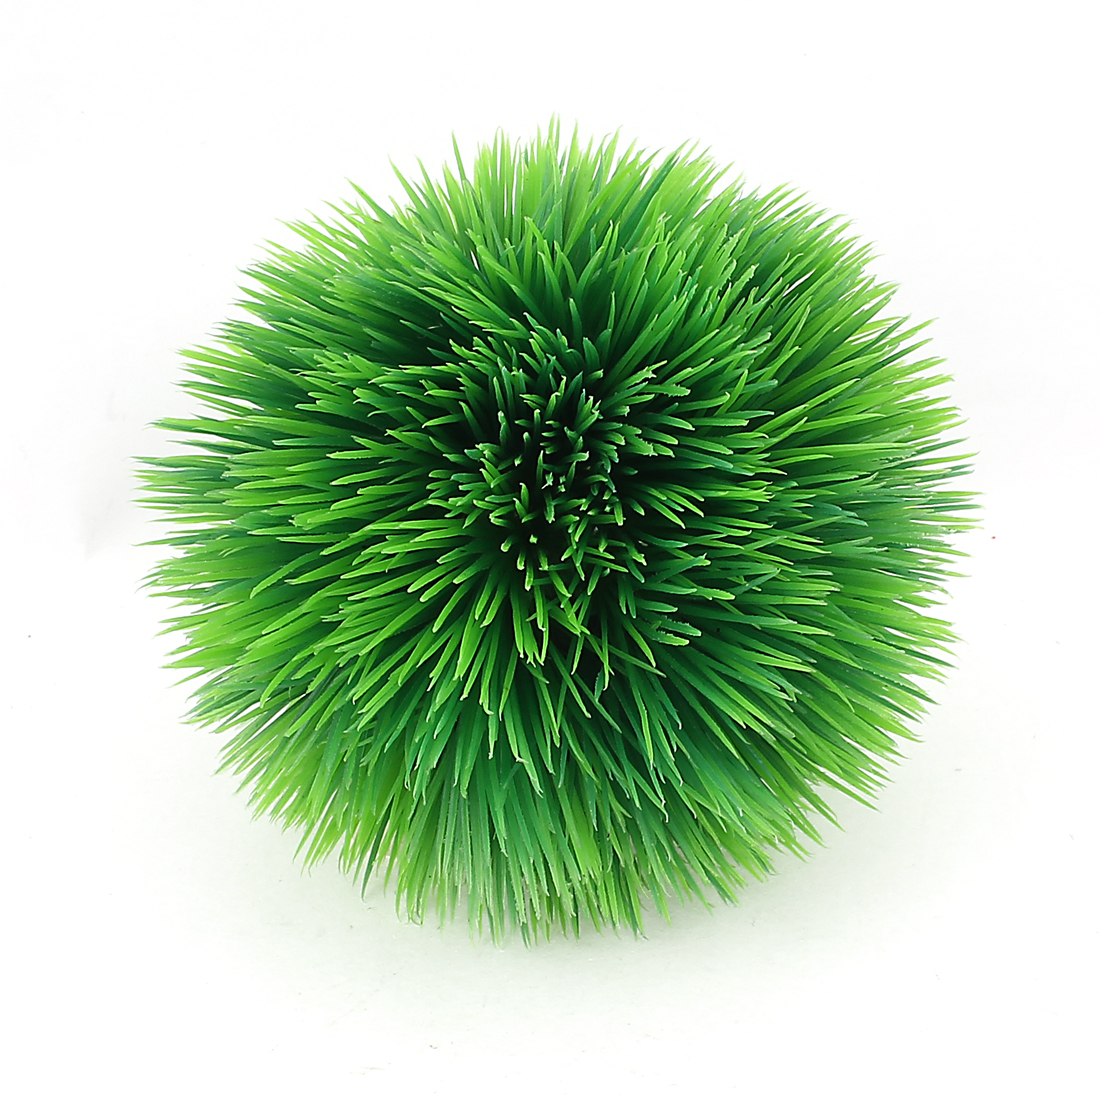 Aquarium Fish Tank Man Made Green Aquatic Ball Water Grass Plant Decor